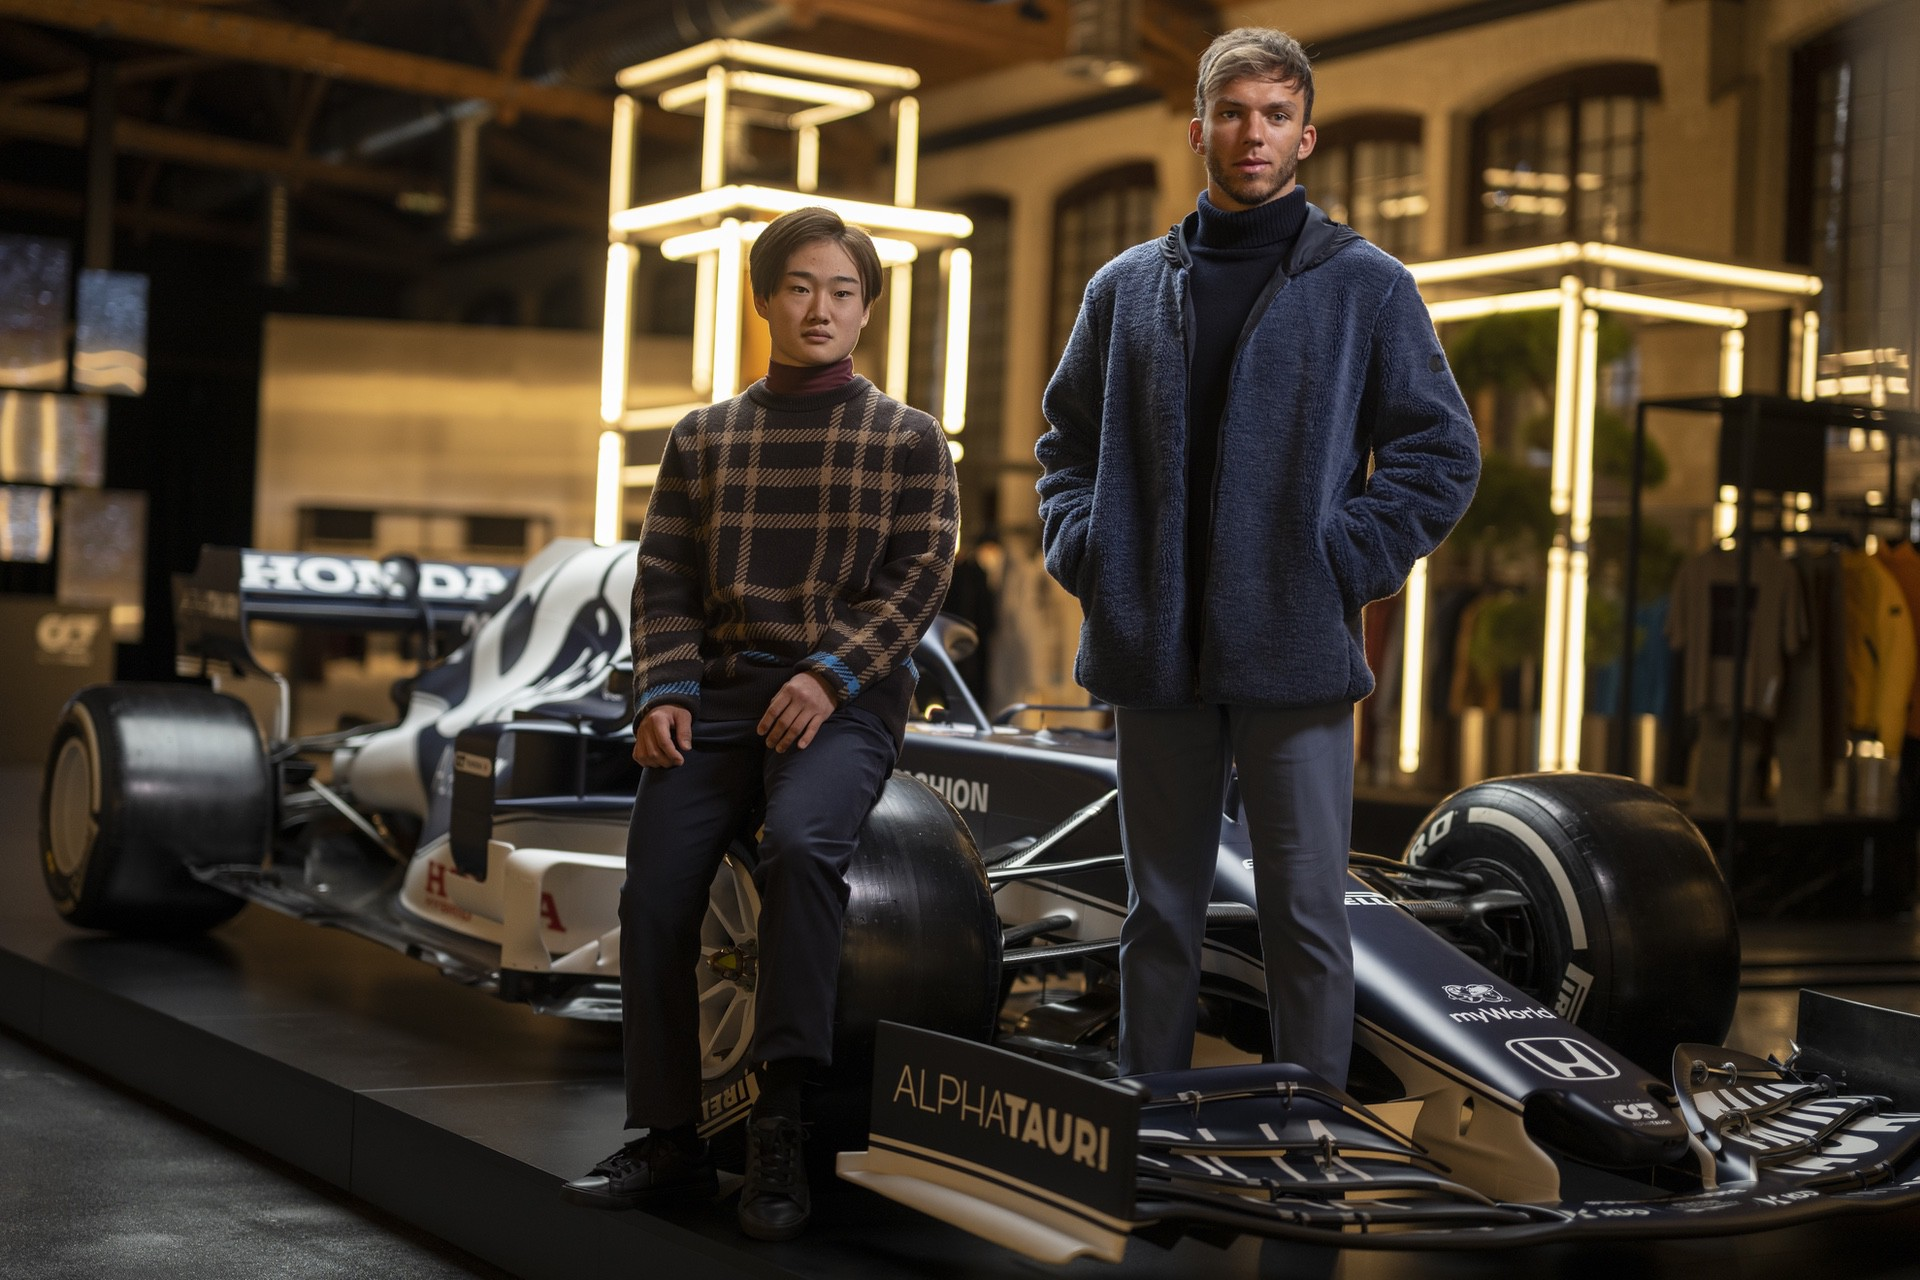 Yuki Tsunoda of Japan and Pierre Gasly of France seen during the Suderia AlphaTauri AT02 Livery Reveal 2021 - Fashion meets Formula 1 in Salzburg, Austria on February 15, 2021. // Joerg Mitter / Red Bull Content Pool // SI202102180134 // Usage for editorial use only //